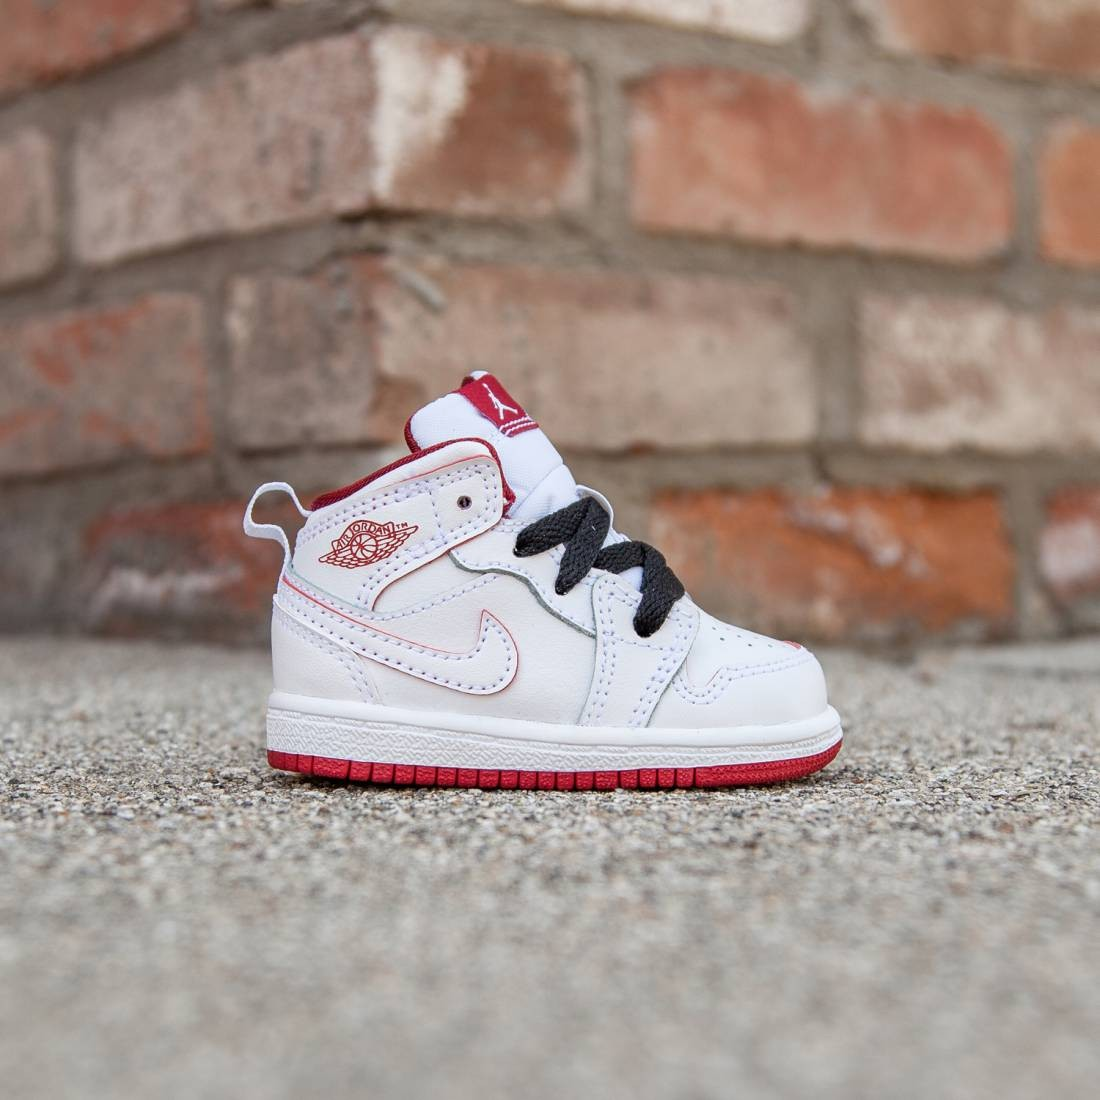 sports shoes 264ae b9c8a Jordan Toddlers Air Jordan 1 Mid (white/black//gym red)